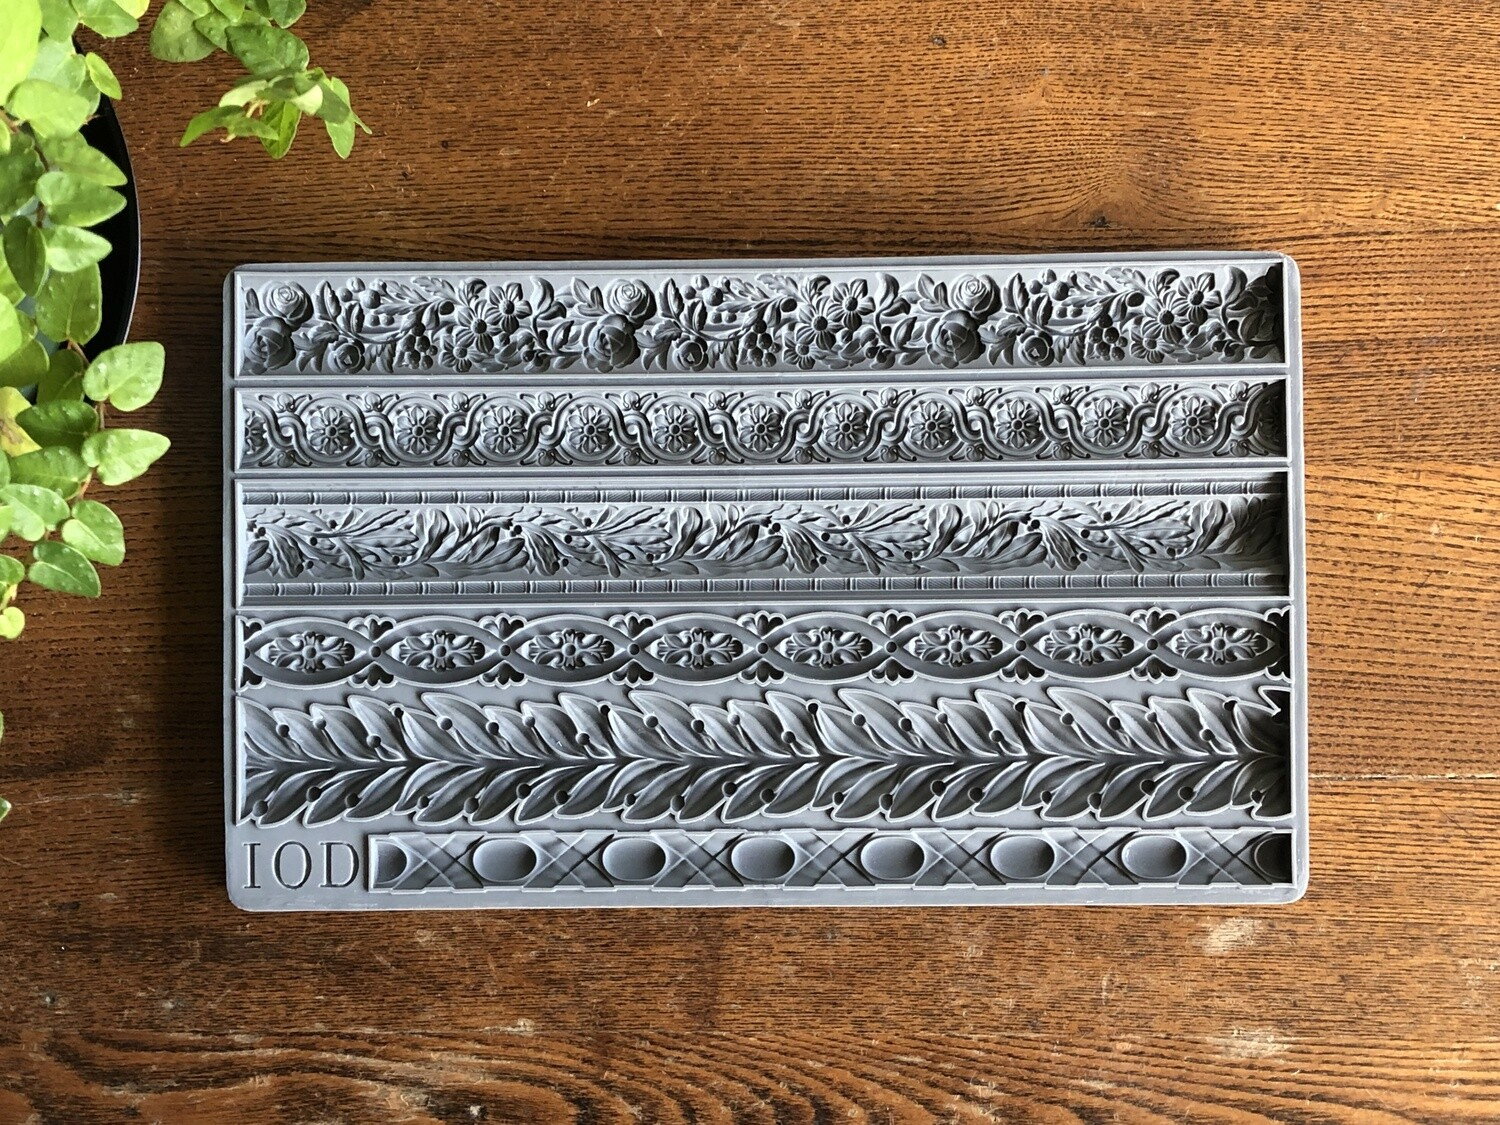 TRIMMINGS 1 6×10 DECOR MOULDS